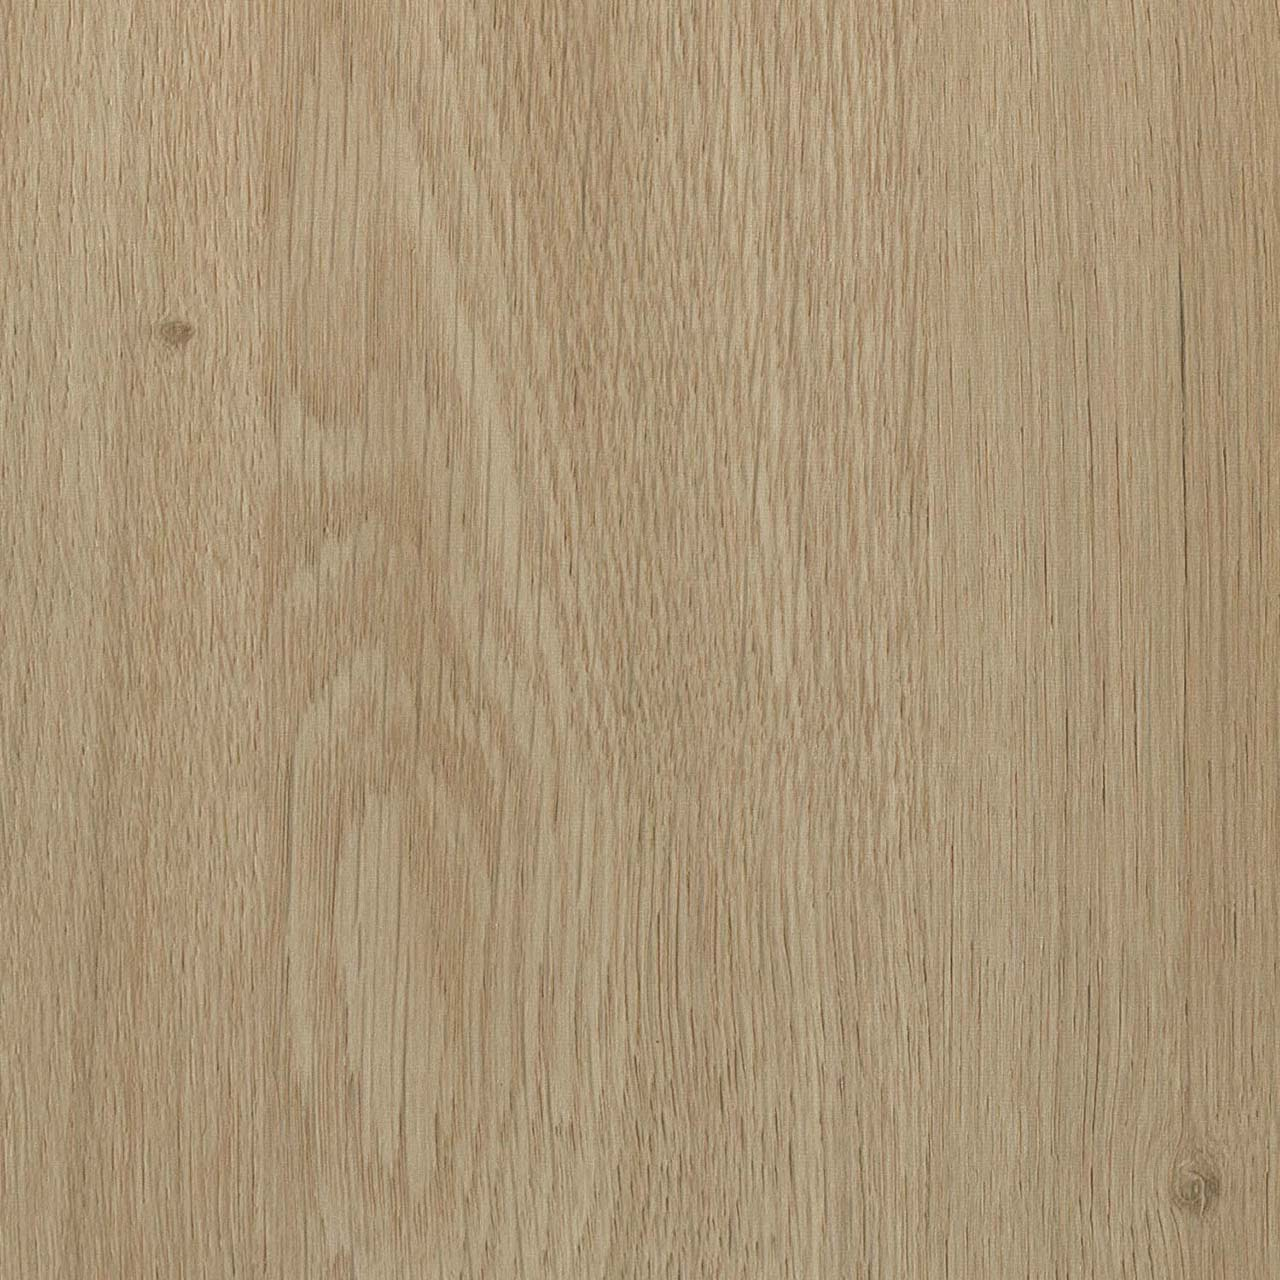 Odessa Oak effect laminate panel